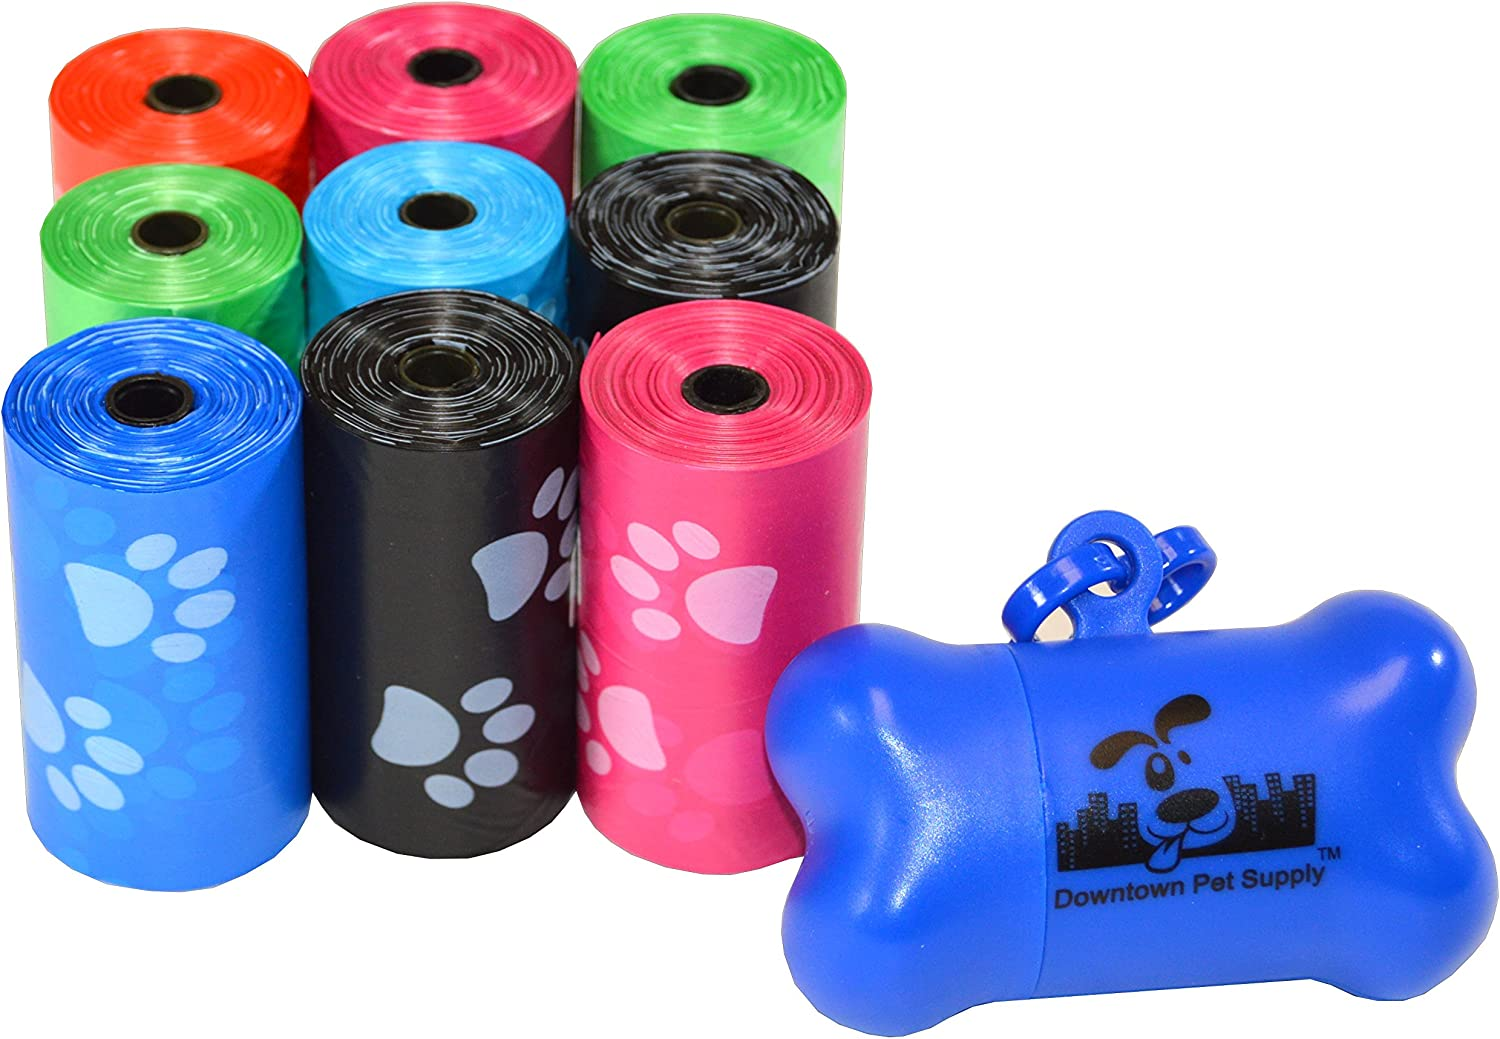 "Downtown Pet Supply, Dog Pet Waste Poop Bags, 12.5"" x 8.5"""